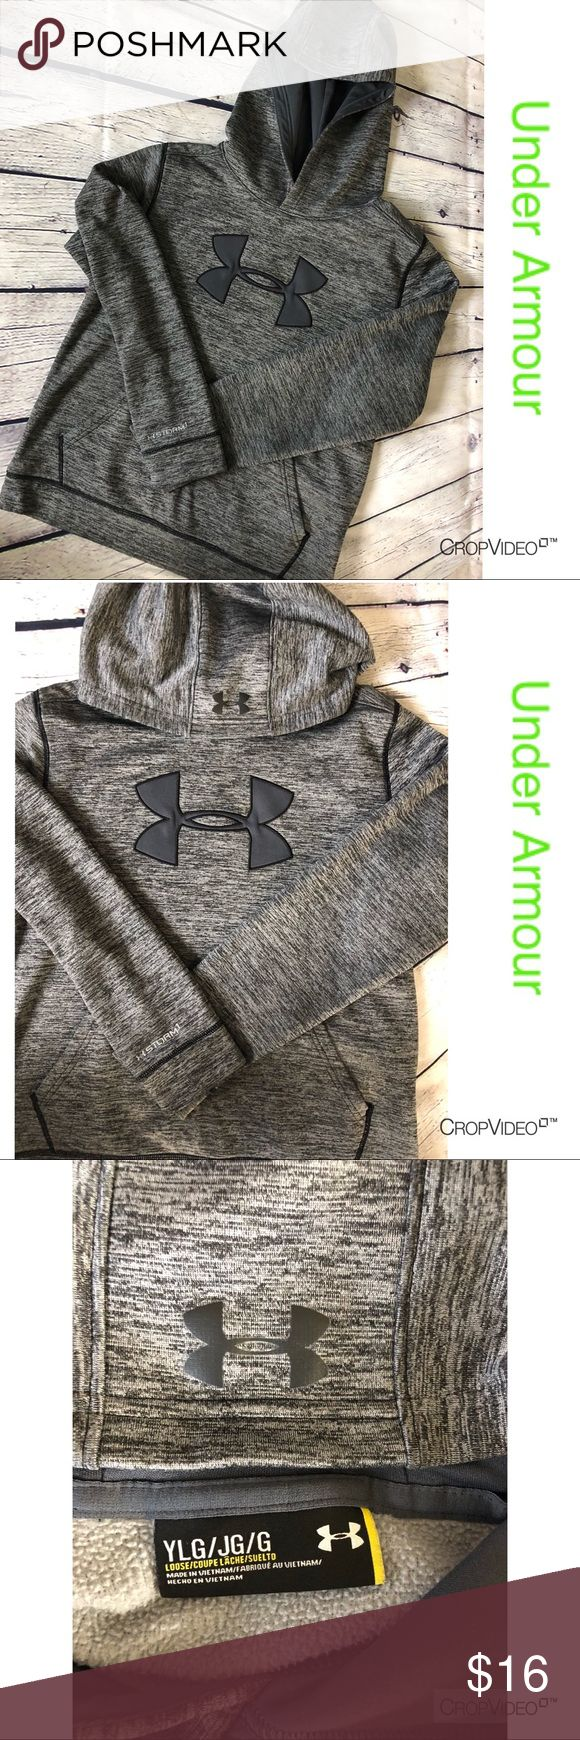 Under Armour Storm 1 gray hoodie, size YLG Under Armour Storm 1 gray hoodie, size YLG, excellent condition Under Armour Shirts & Tops Sweatshirts & Hoodies